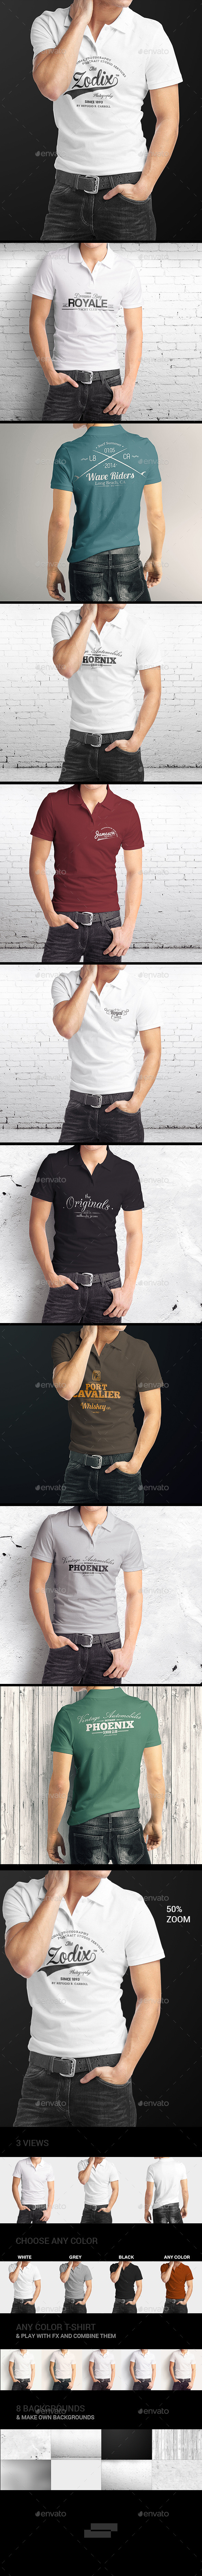 GraphicRiver Man Polo Shirt Mock-Up 9109076